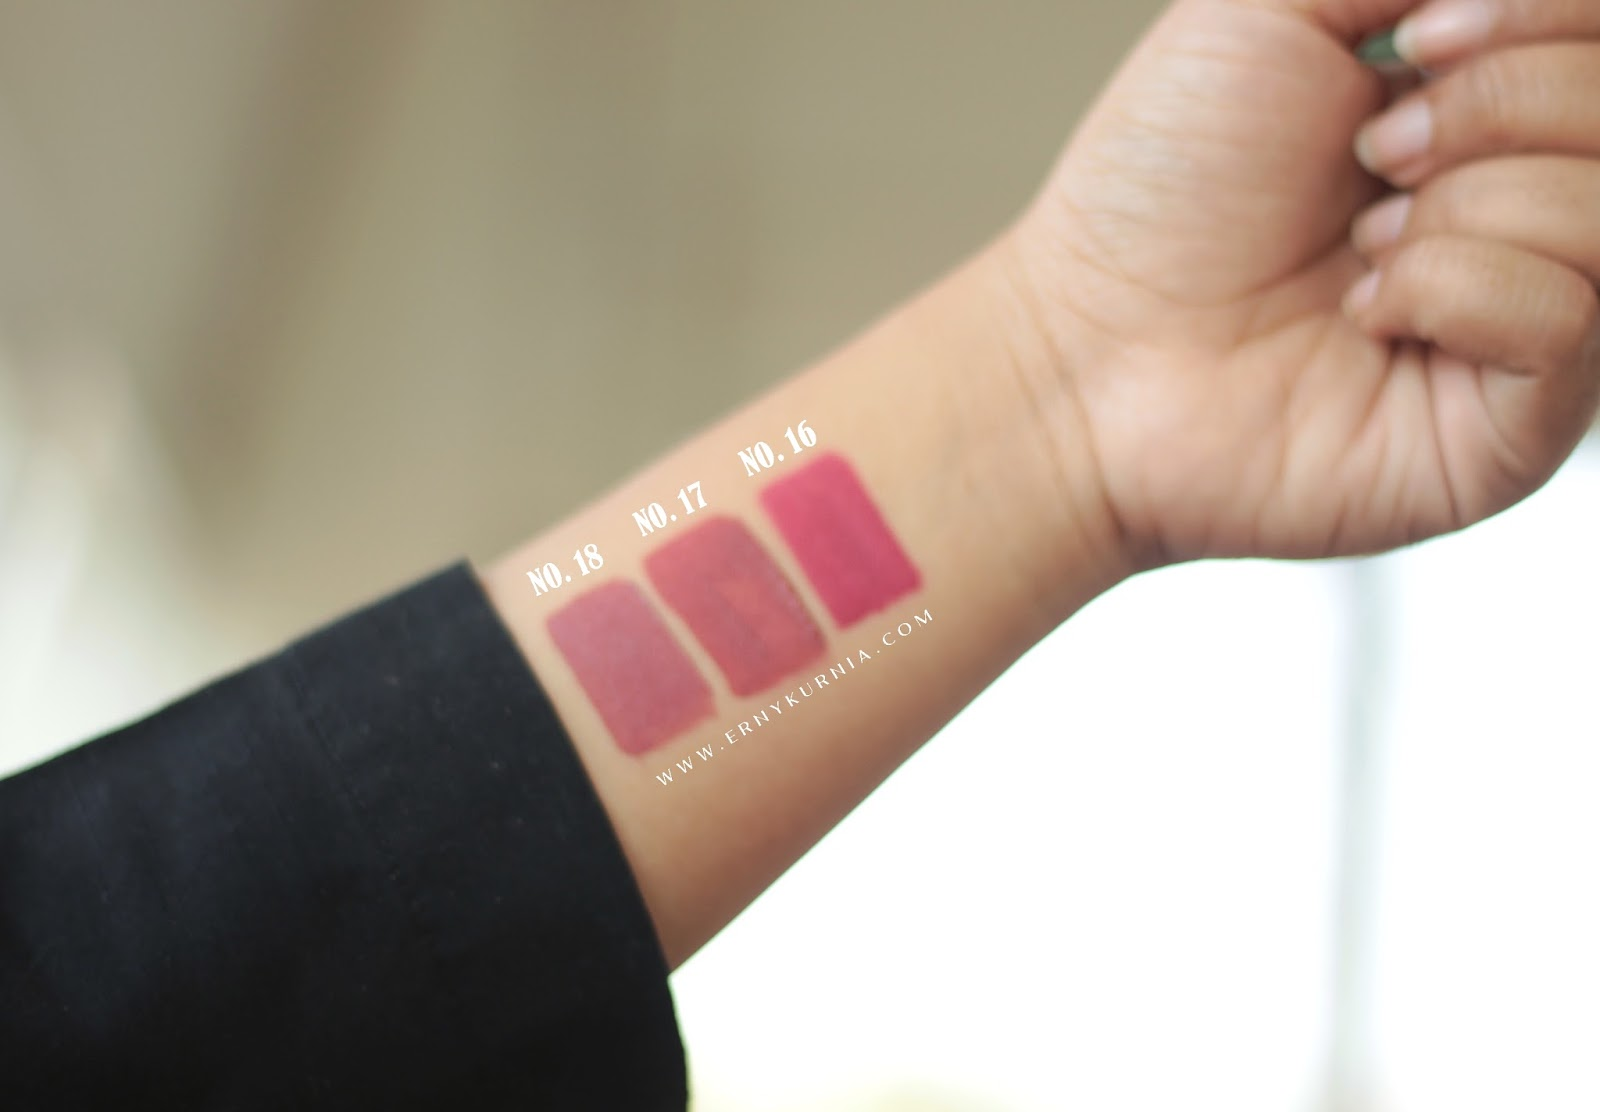 Swatches Wardah Lip Cream No. 16, Swatches Wardah Lip Cream No. 17, Swatches Wardah Lip Cream No. 18